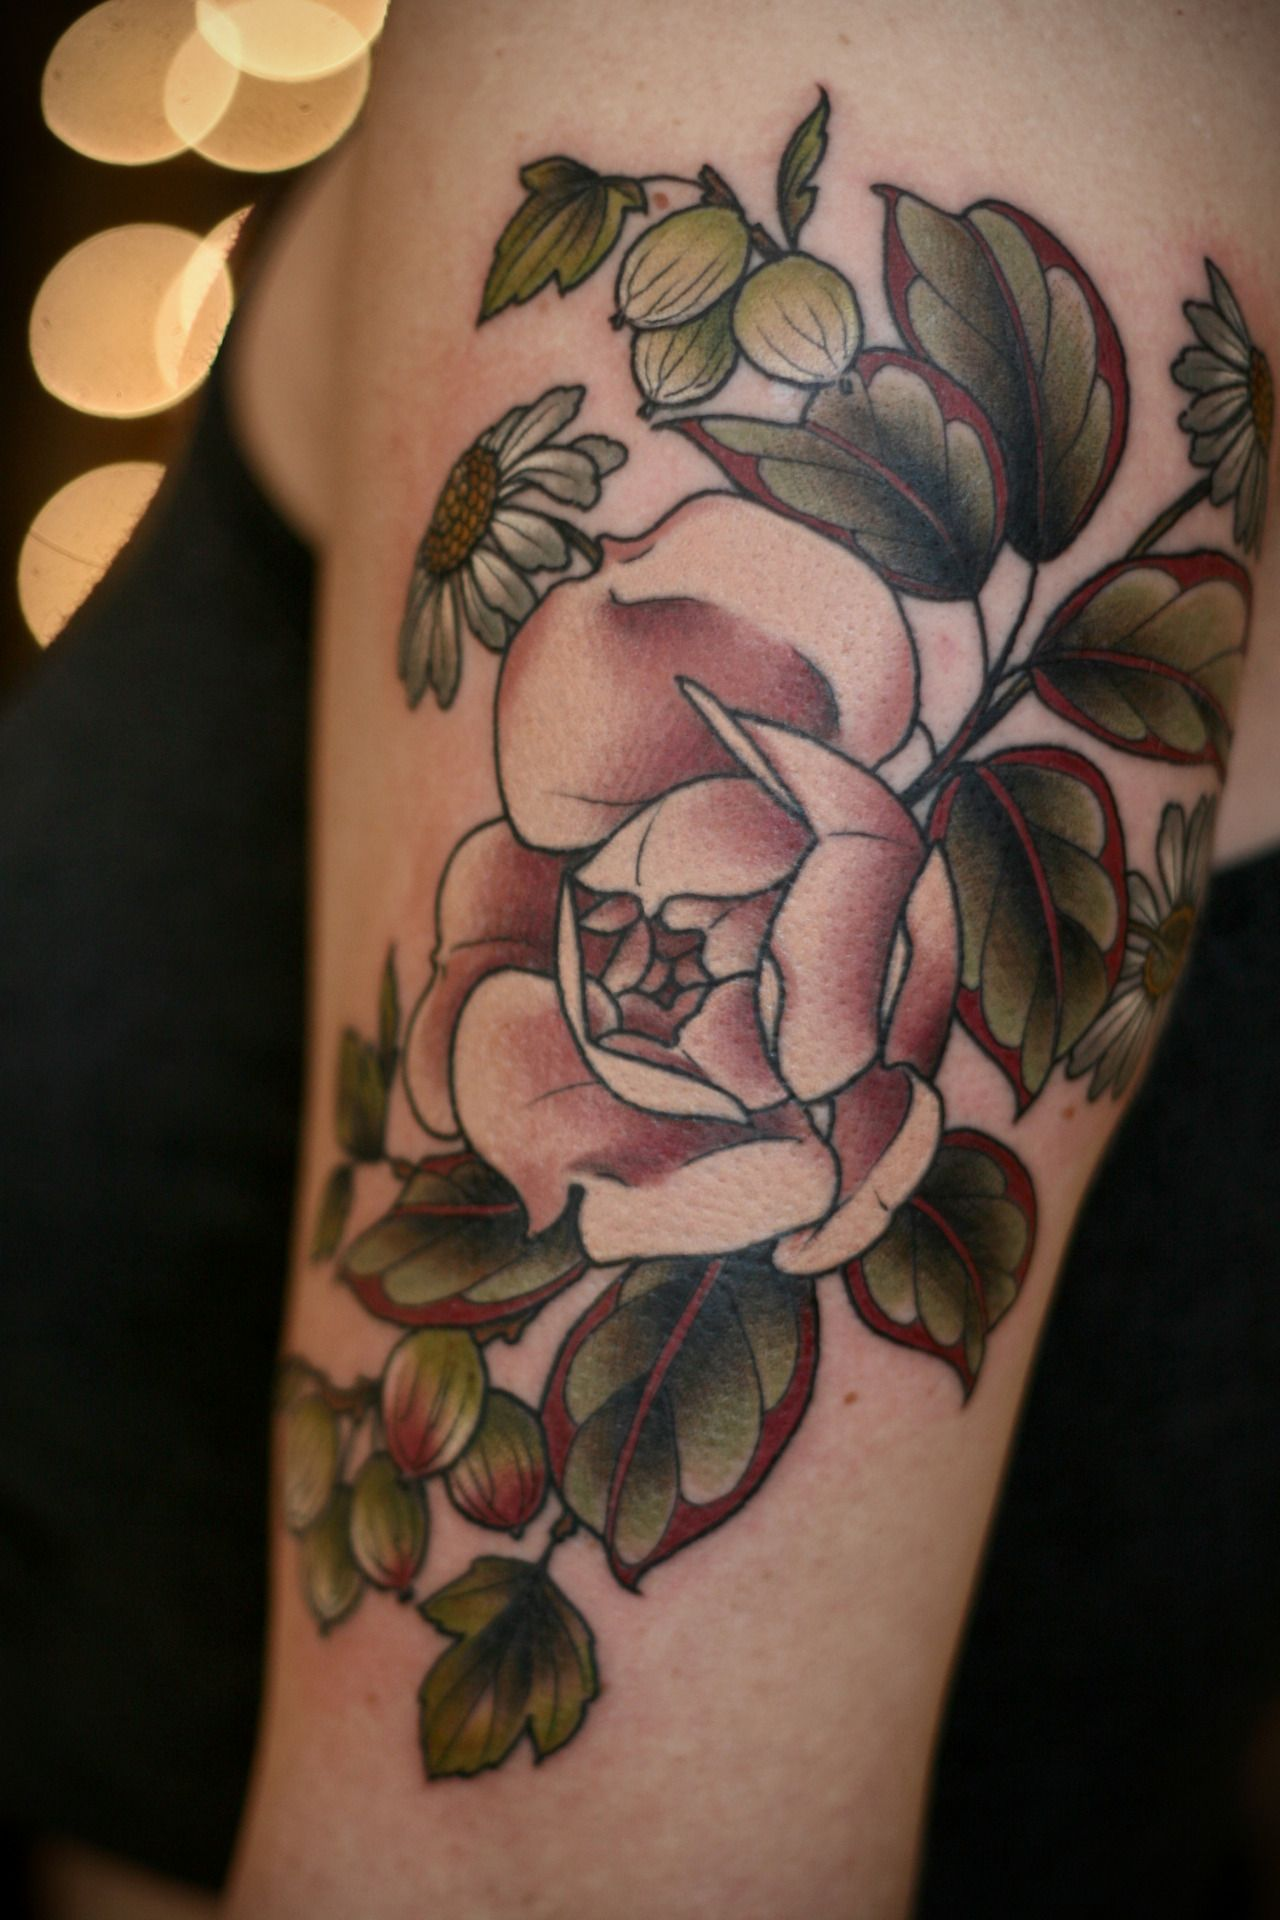 kirstenmakestattoos Tattoos, Rose tattoos tumblr, Baby